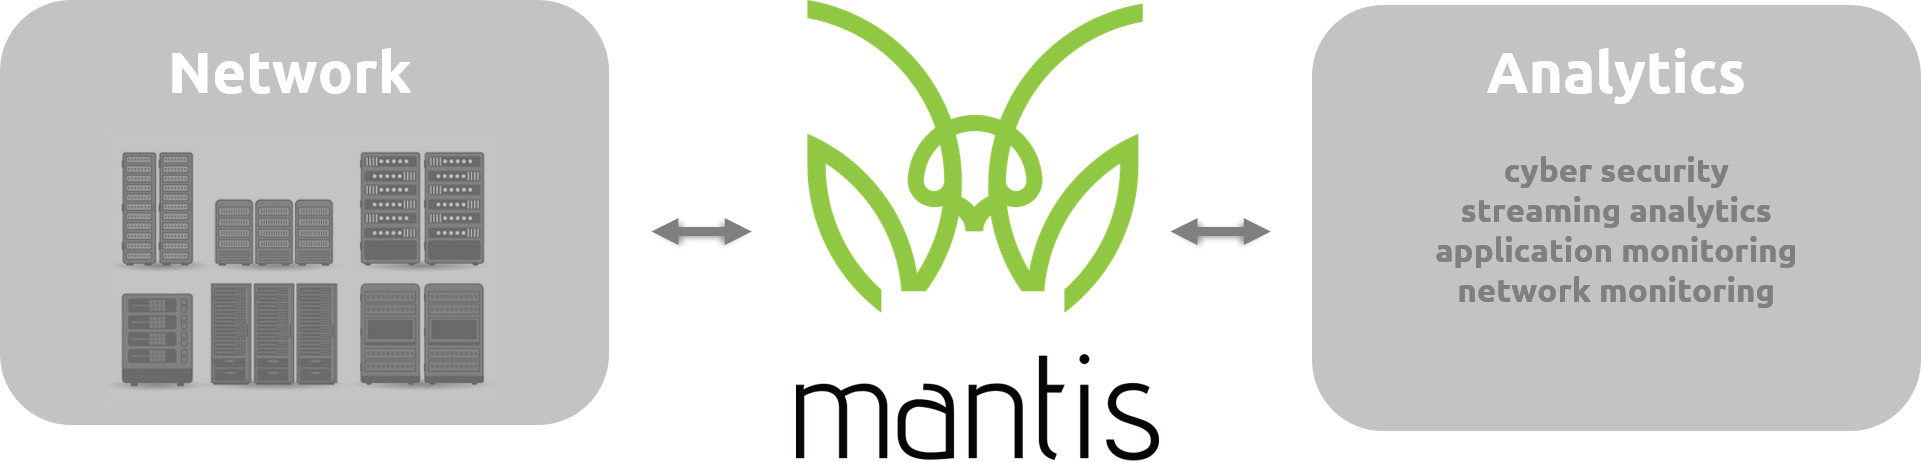 MantisNet-Products.png